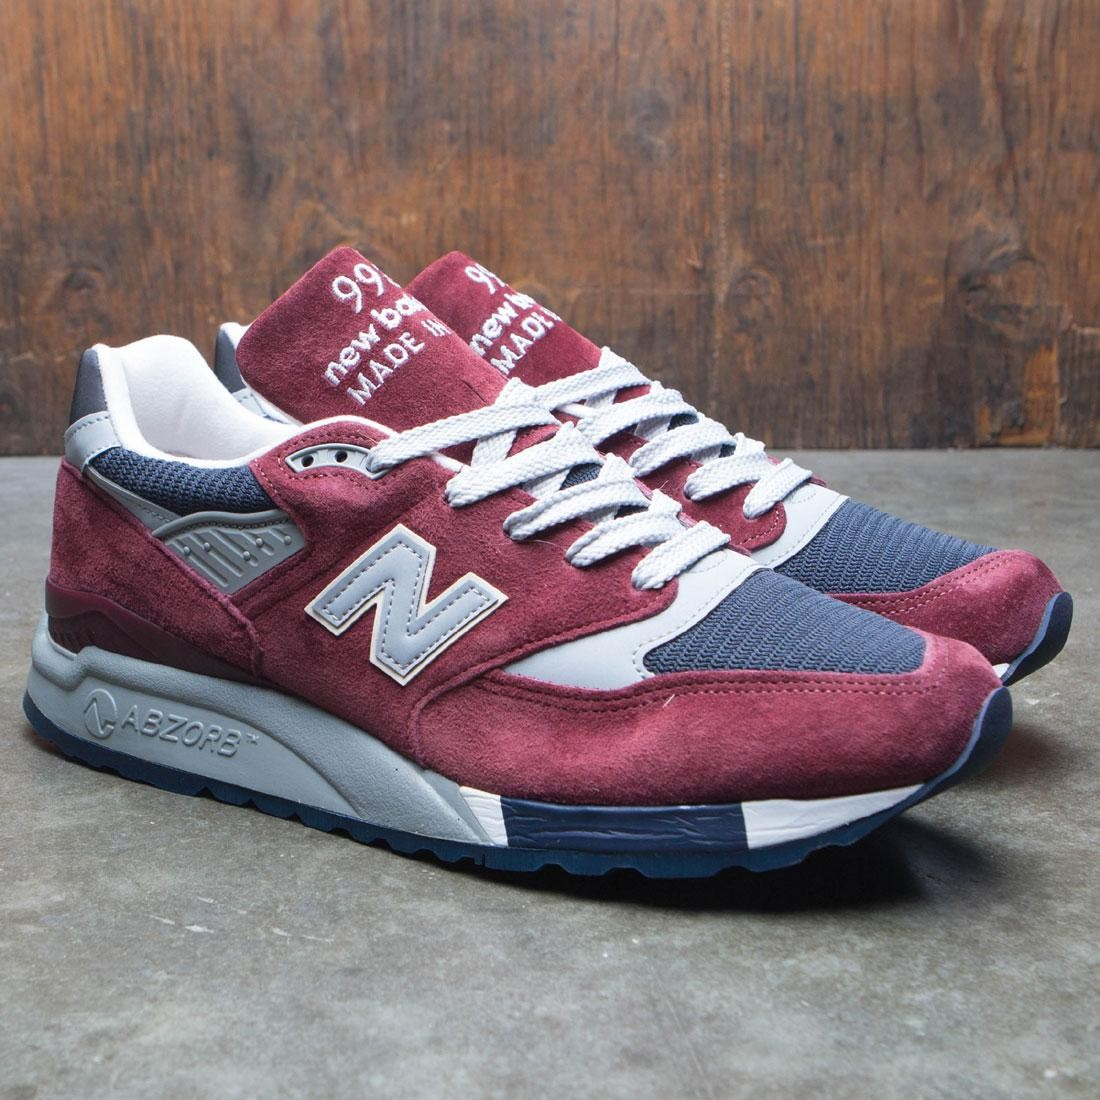 sneakers for cheap 4cebb 8a88c New Balance x J Crew Men 998 Port M998JB1 - Made In USA (burgundy / blue /  grey / white)